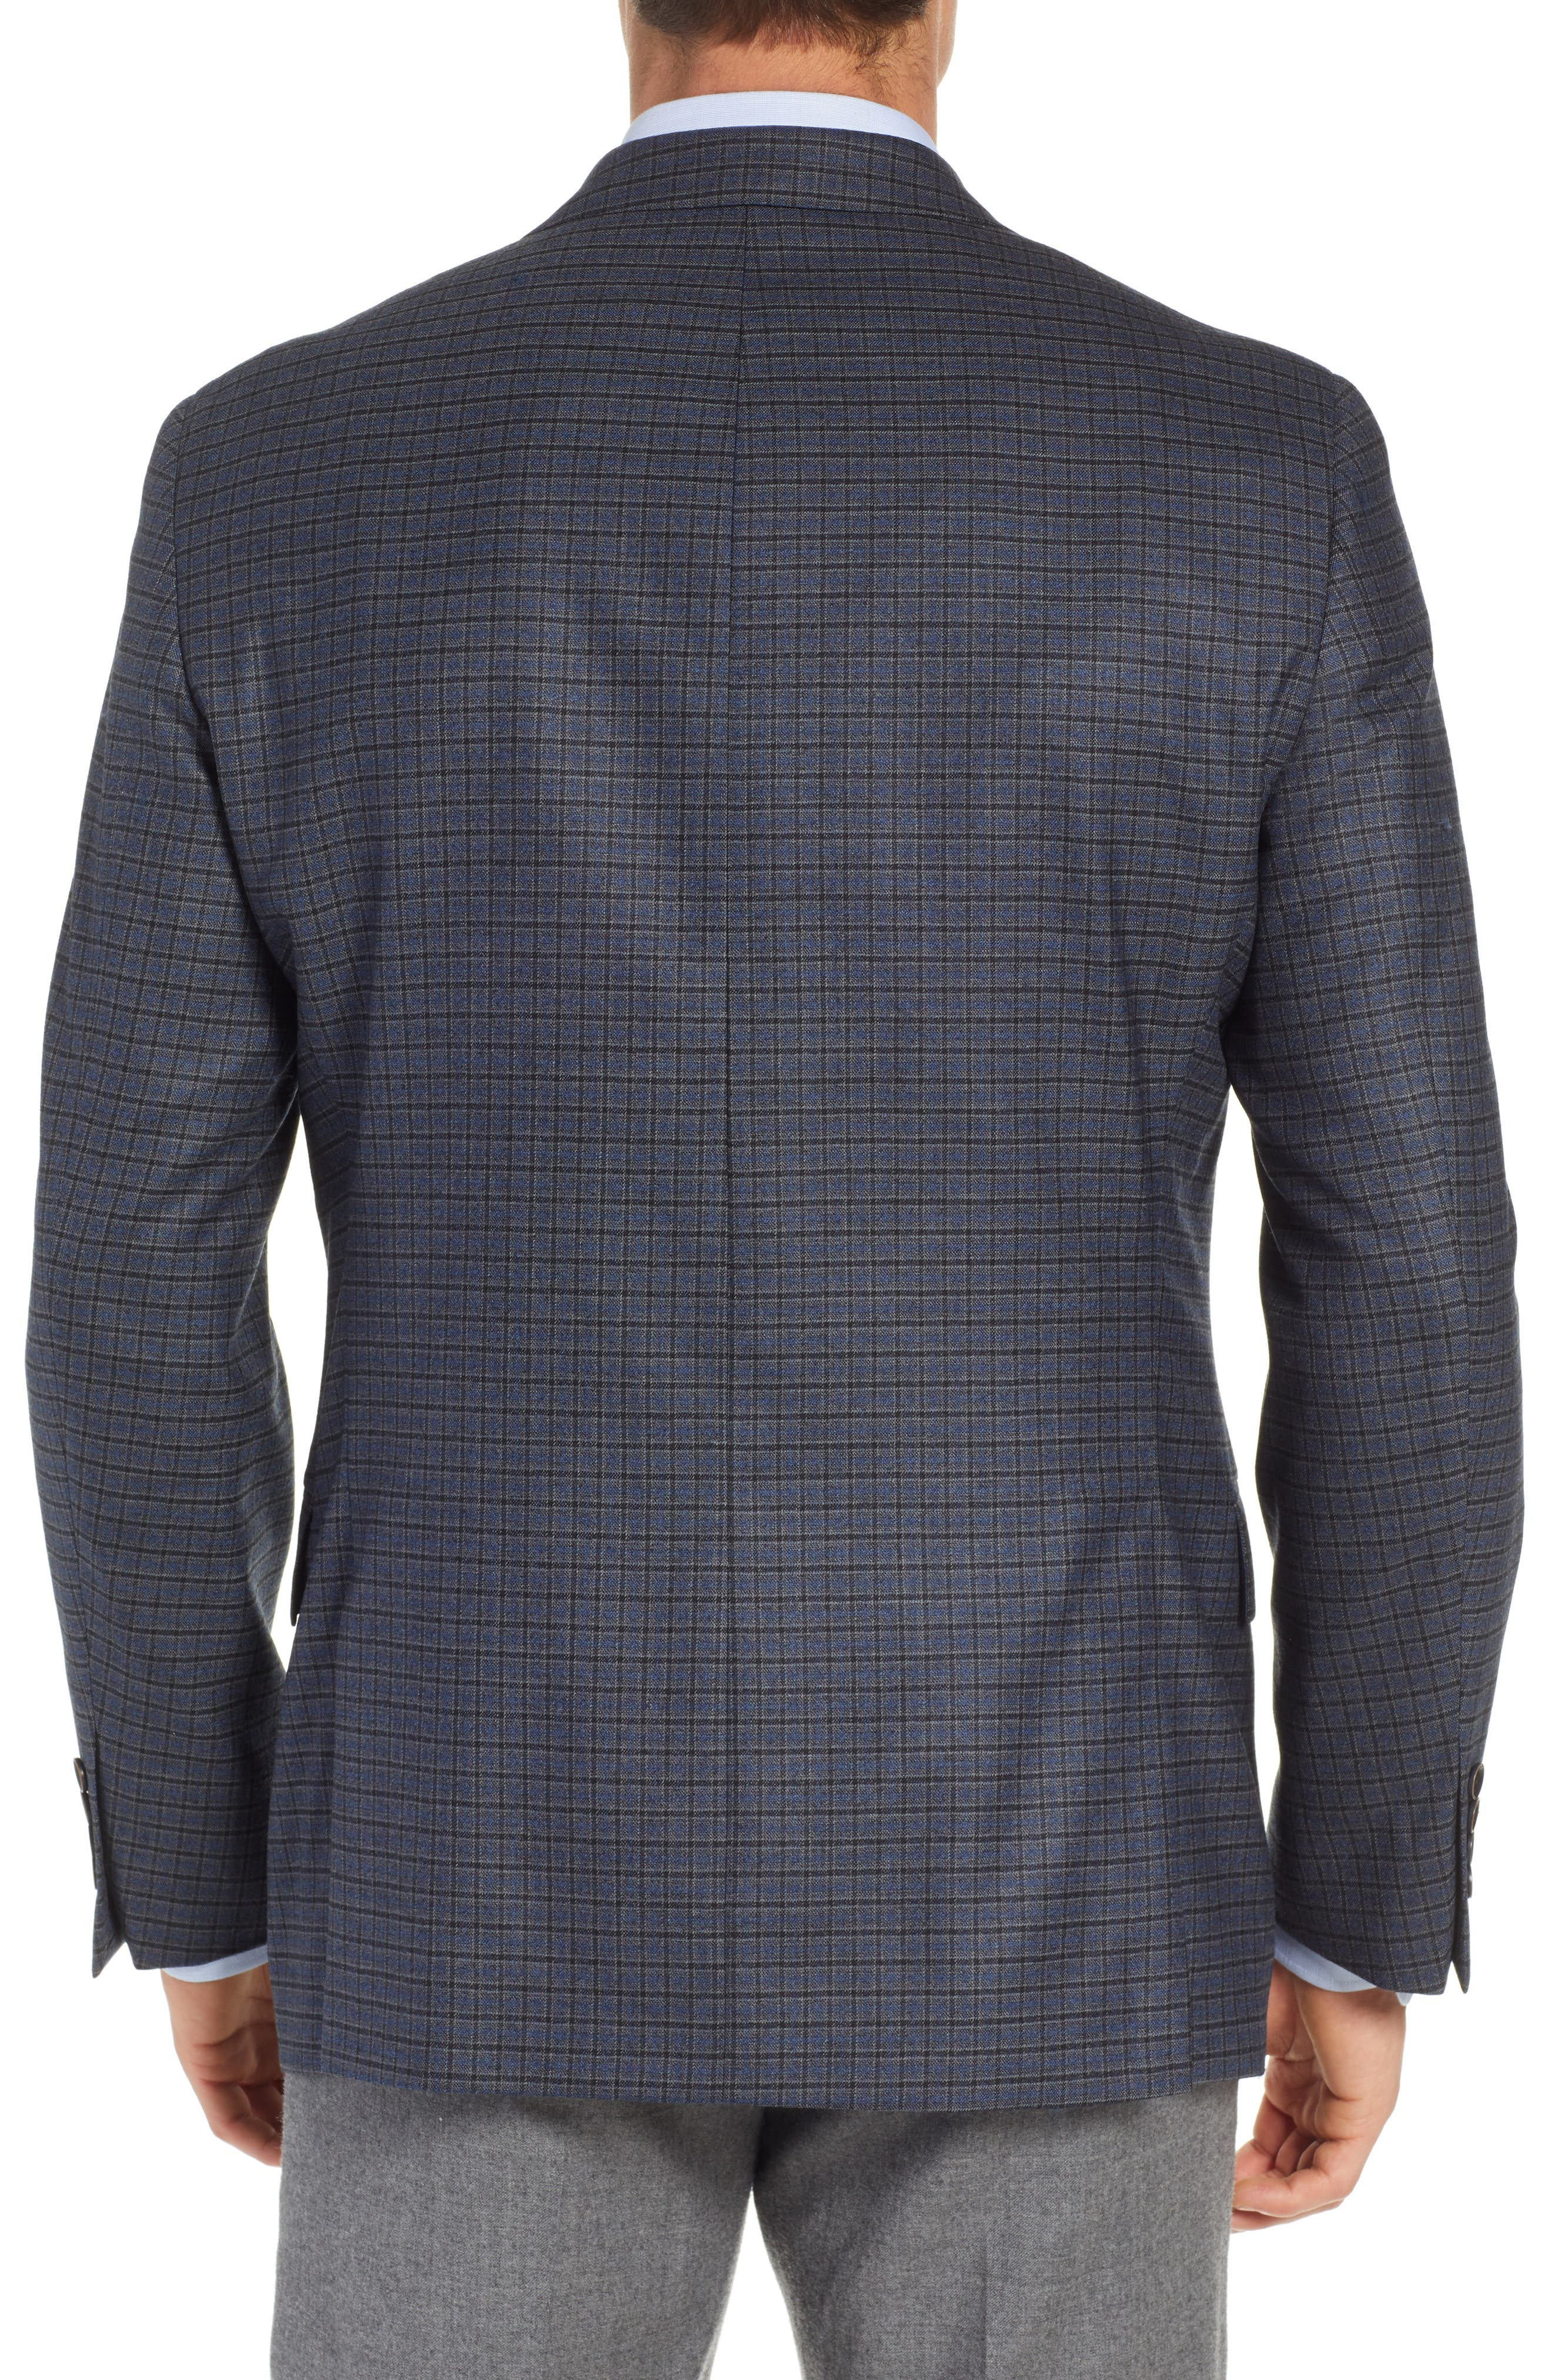 HART SCHAFFNER MARX,                             Classic Fit Stretch Check Wool Sport Coat,                             Alternate thumbnail 2, color,                             420